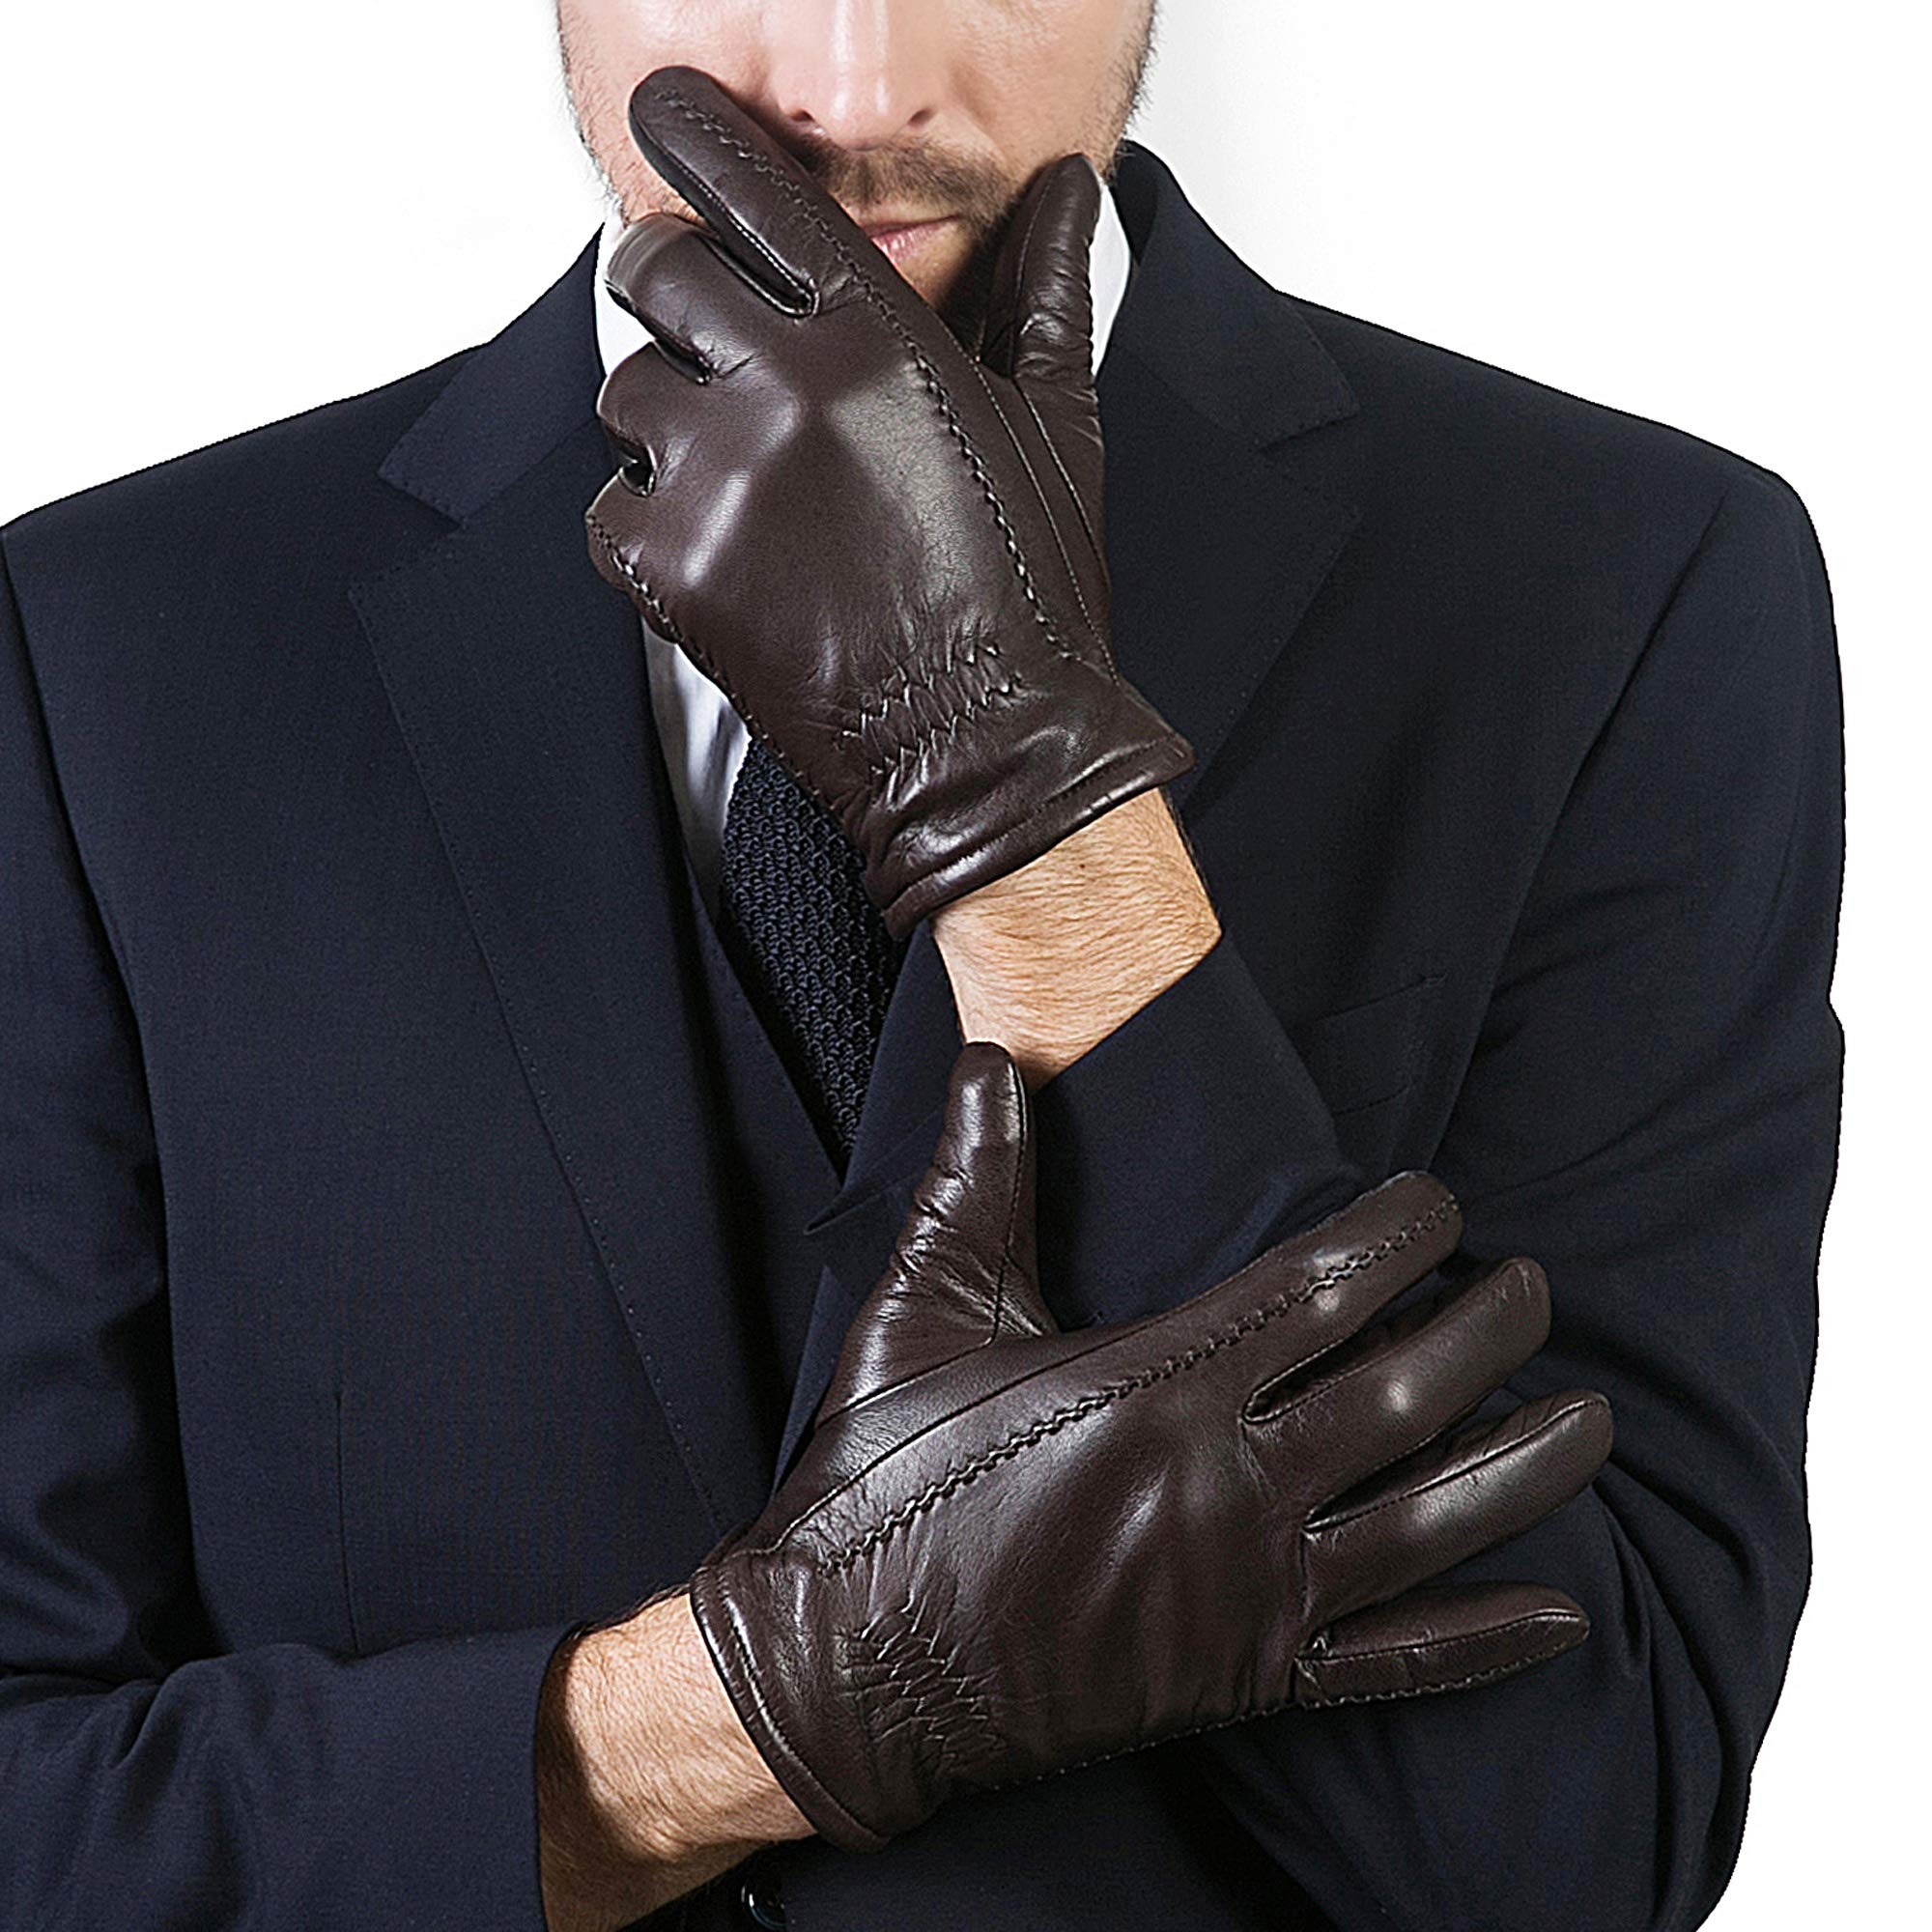 YISEVEN Men's Buttery-Soft Lambskin Leather Gloves Fleece Lined Spring Winter Hand Warm Fur Heated Lining Dress and Motorcycle Driving Real Luxury Stylish Holiday Xmas Gift,Brown 15''/XXXL